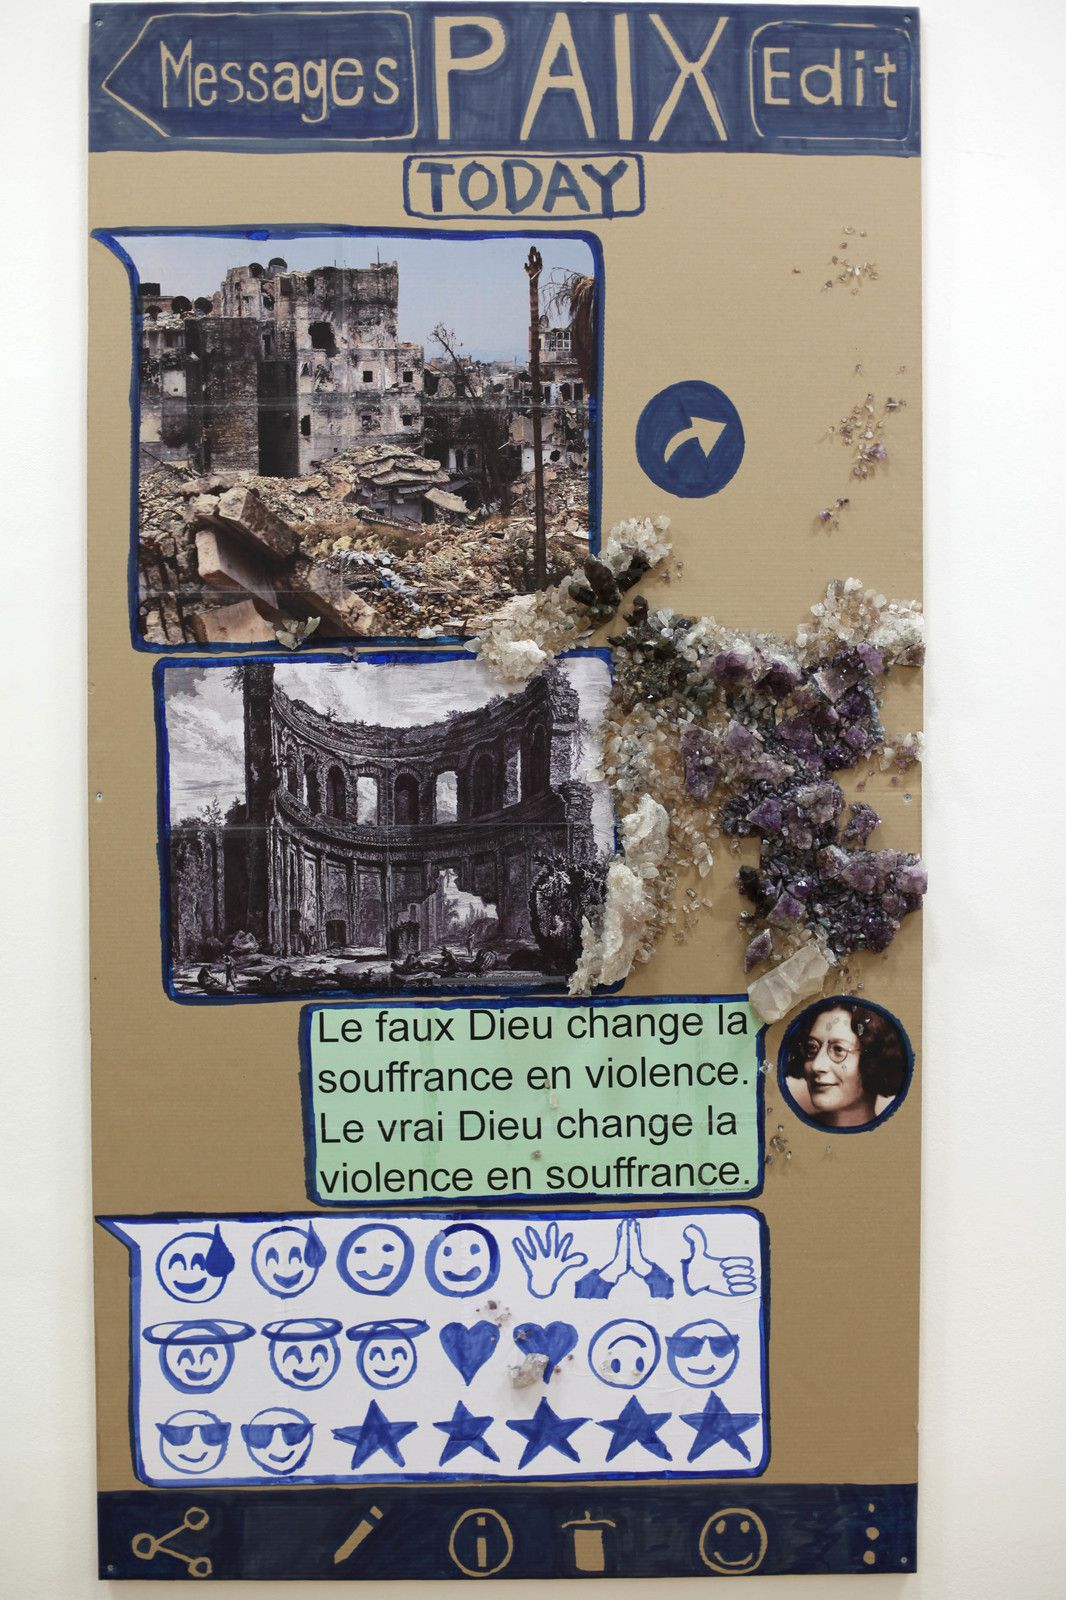 """Paix (Chat - poster)"", 2020 de Thomas HIRSCHHORN - Courtesy Galerie Chantal Crousel @ Photo Éric Simon"